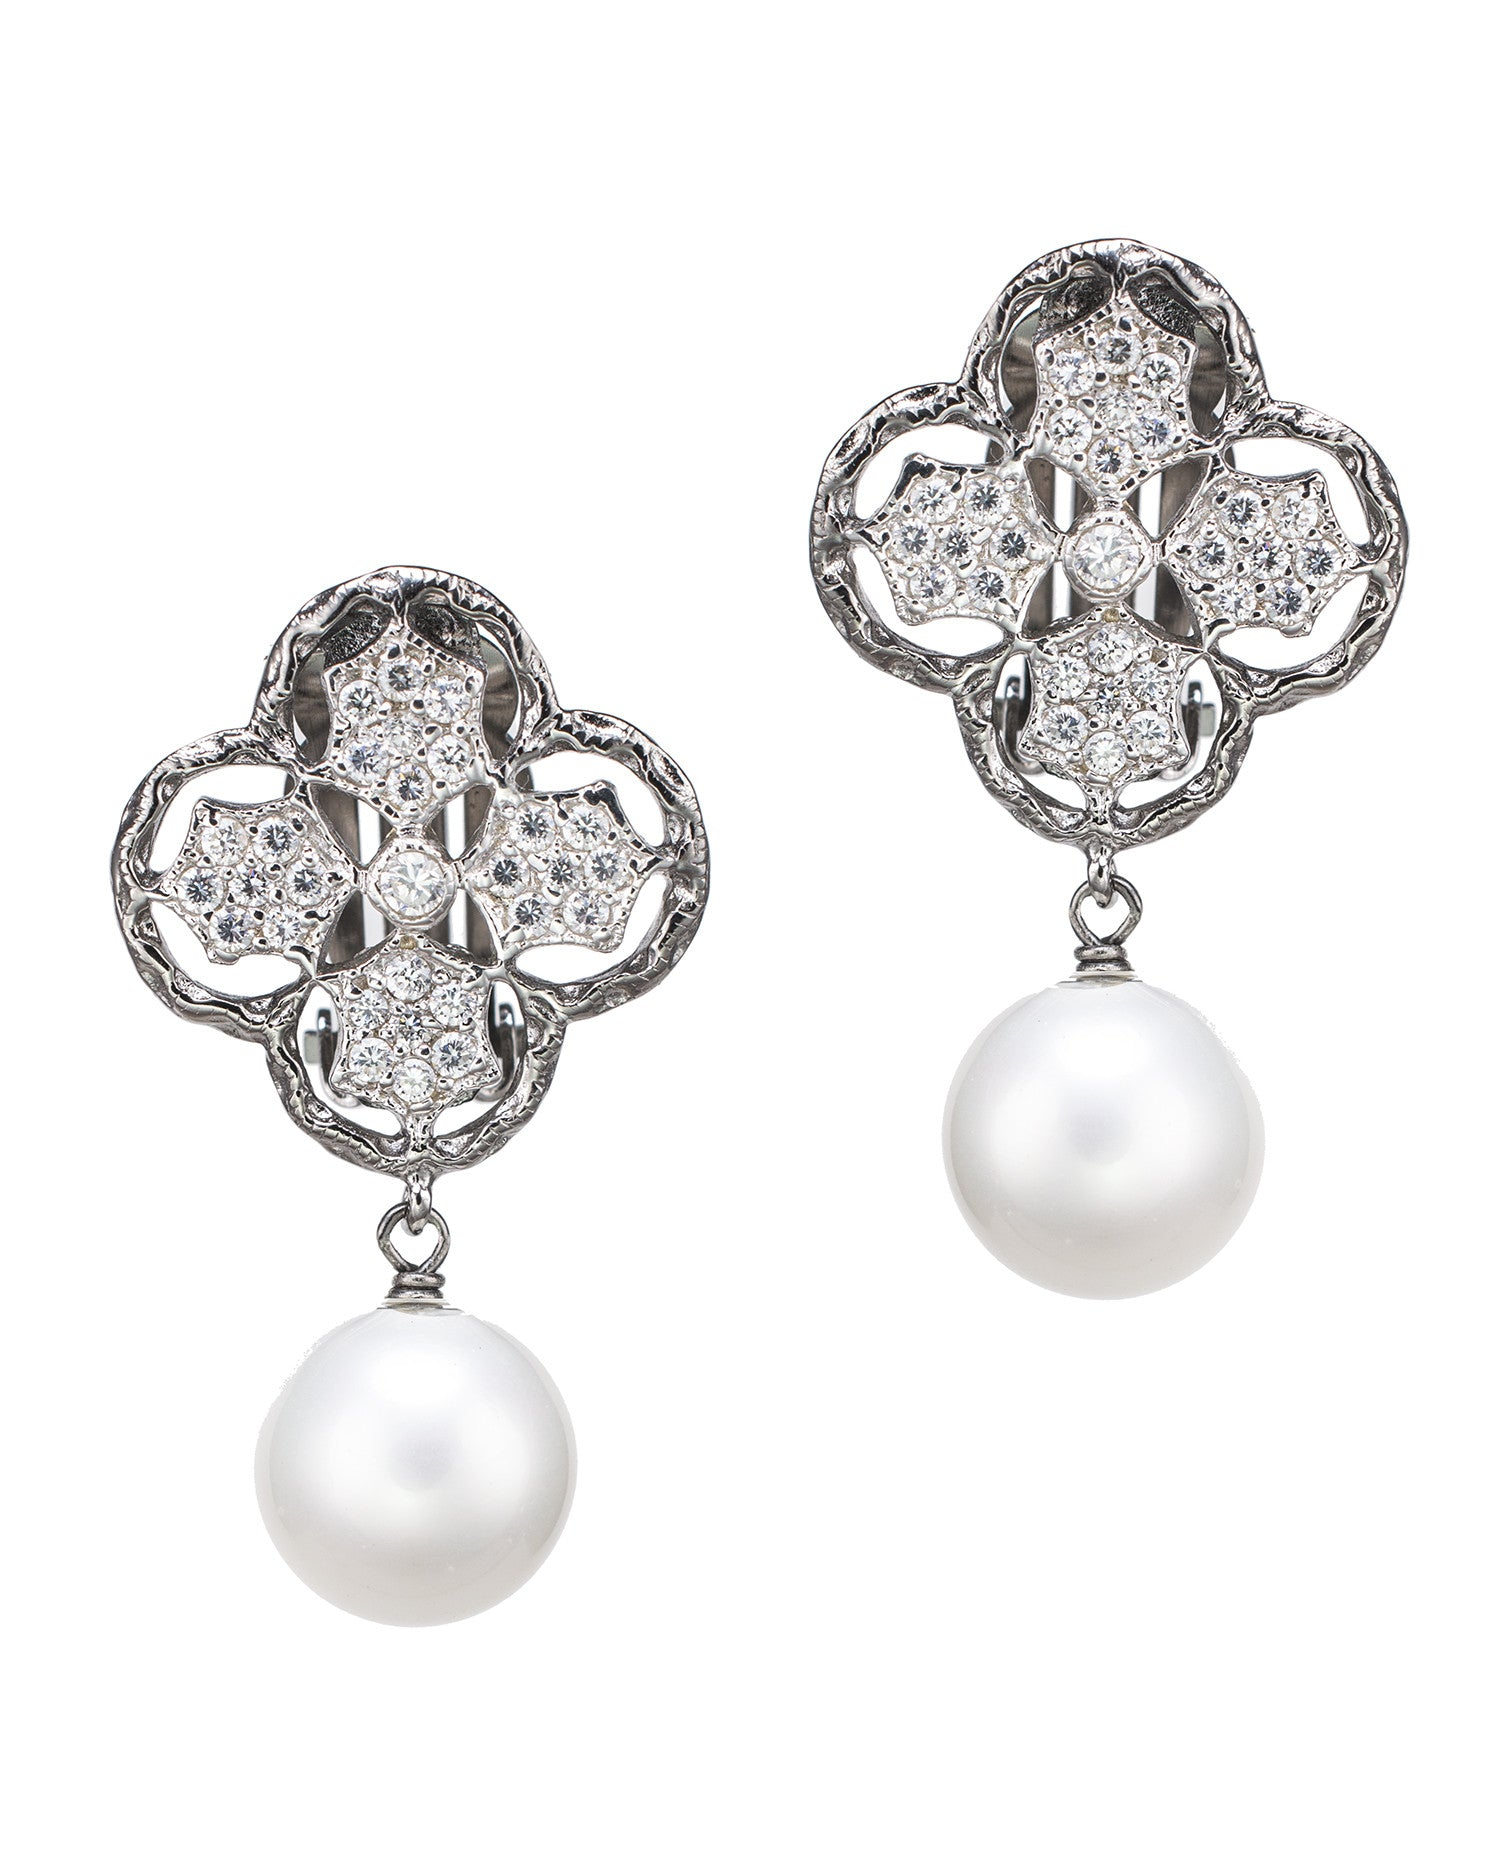 Classic Clover and Pearl Clip Earrings